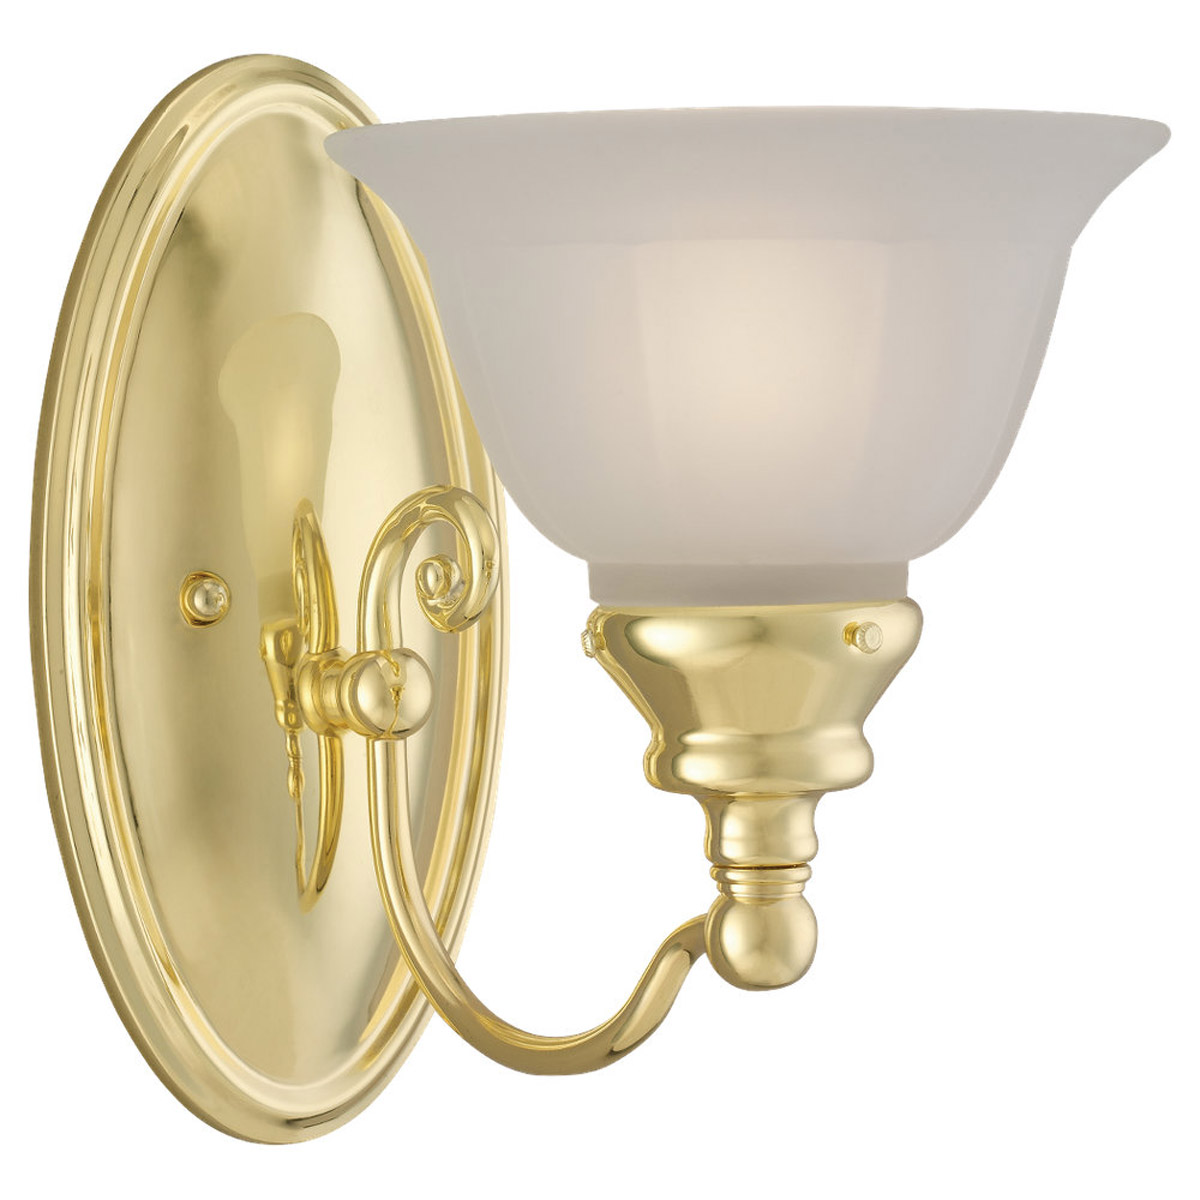 Sea Gull Lighting Canterbury 1 Light Bath Vanity in Polished Brass 44650-02